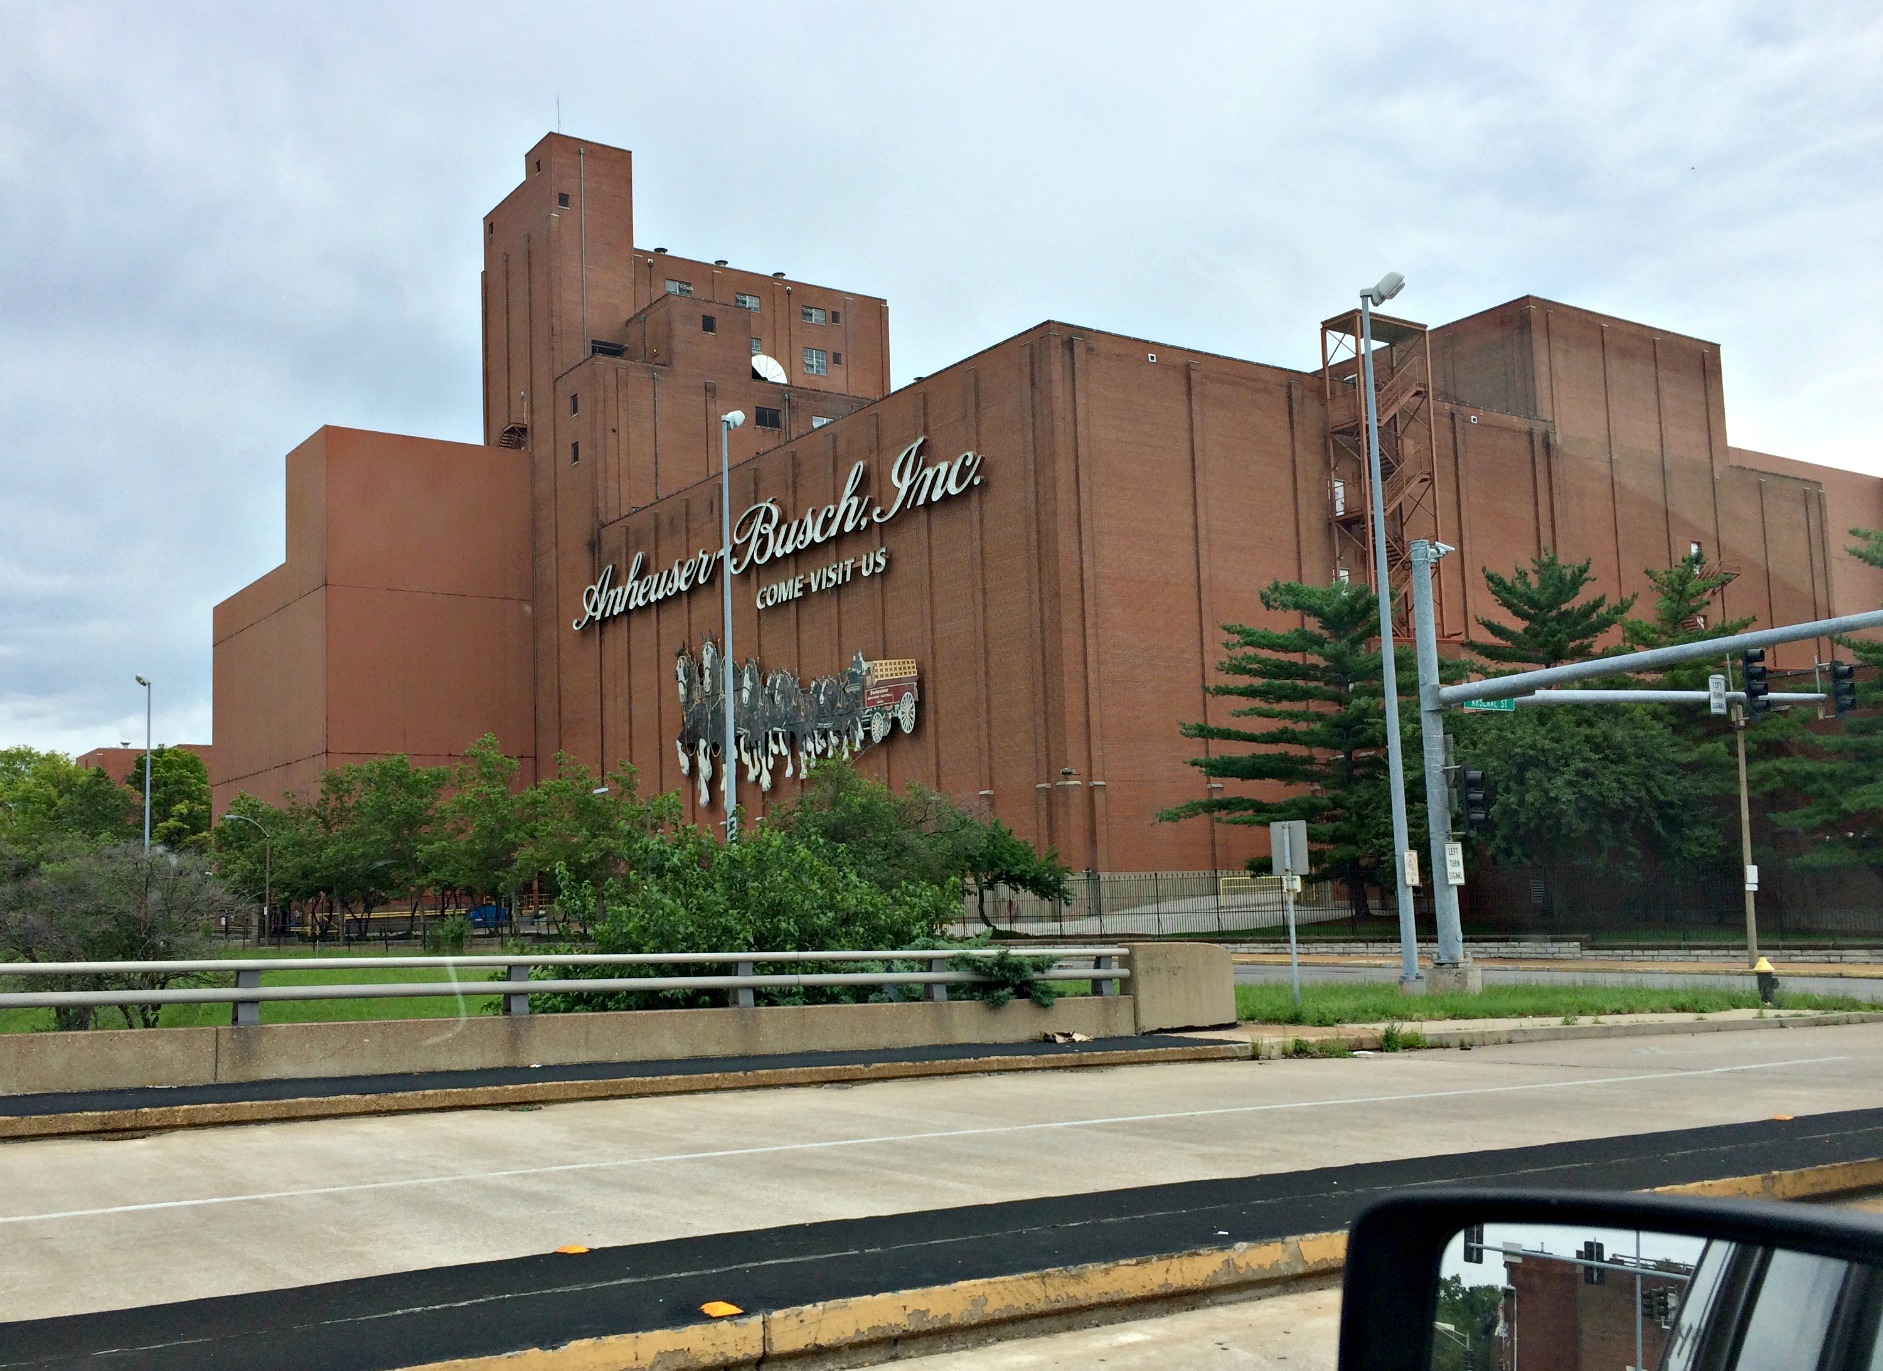 Anheuser-Busch building, St. Louis, Missouri